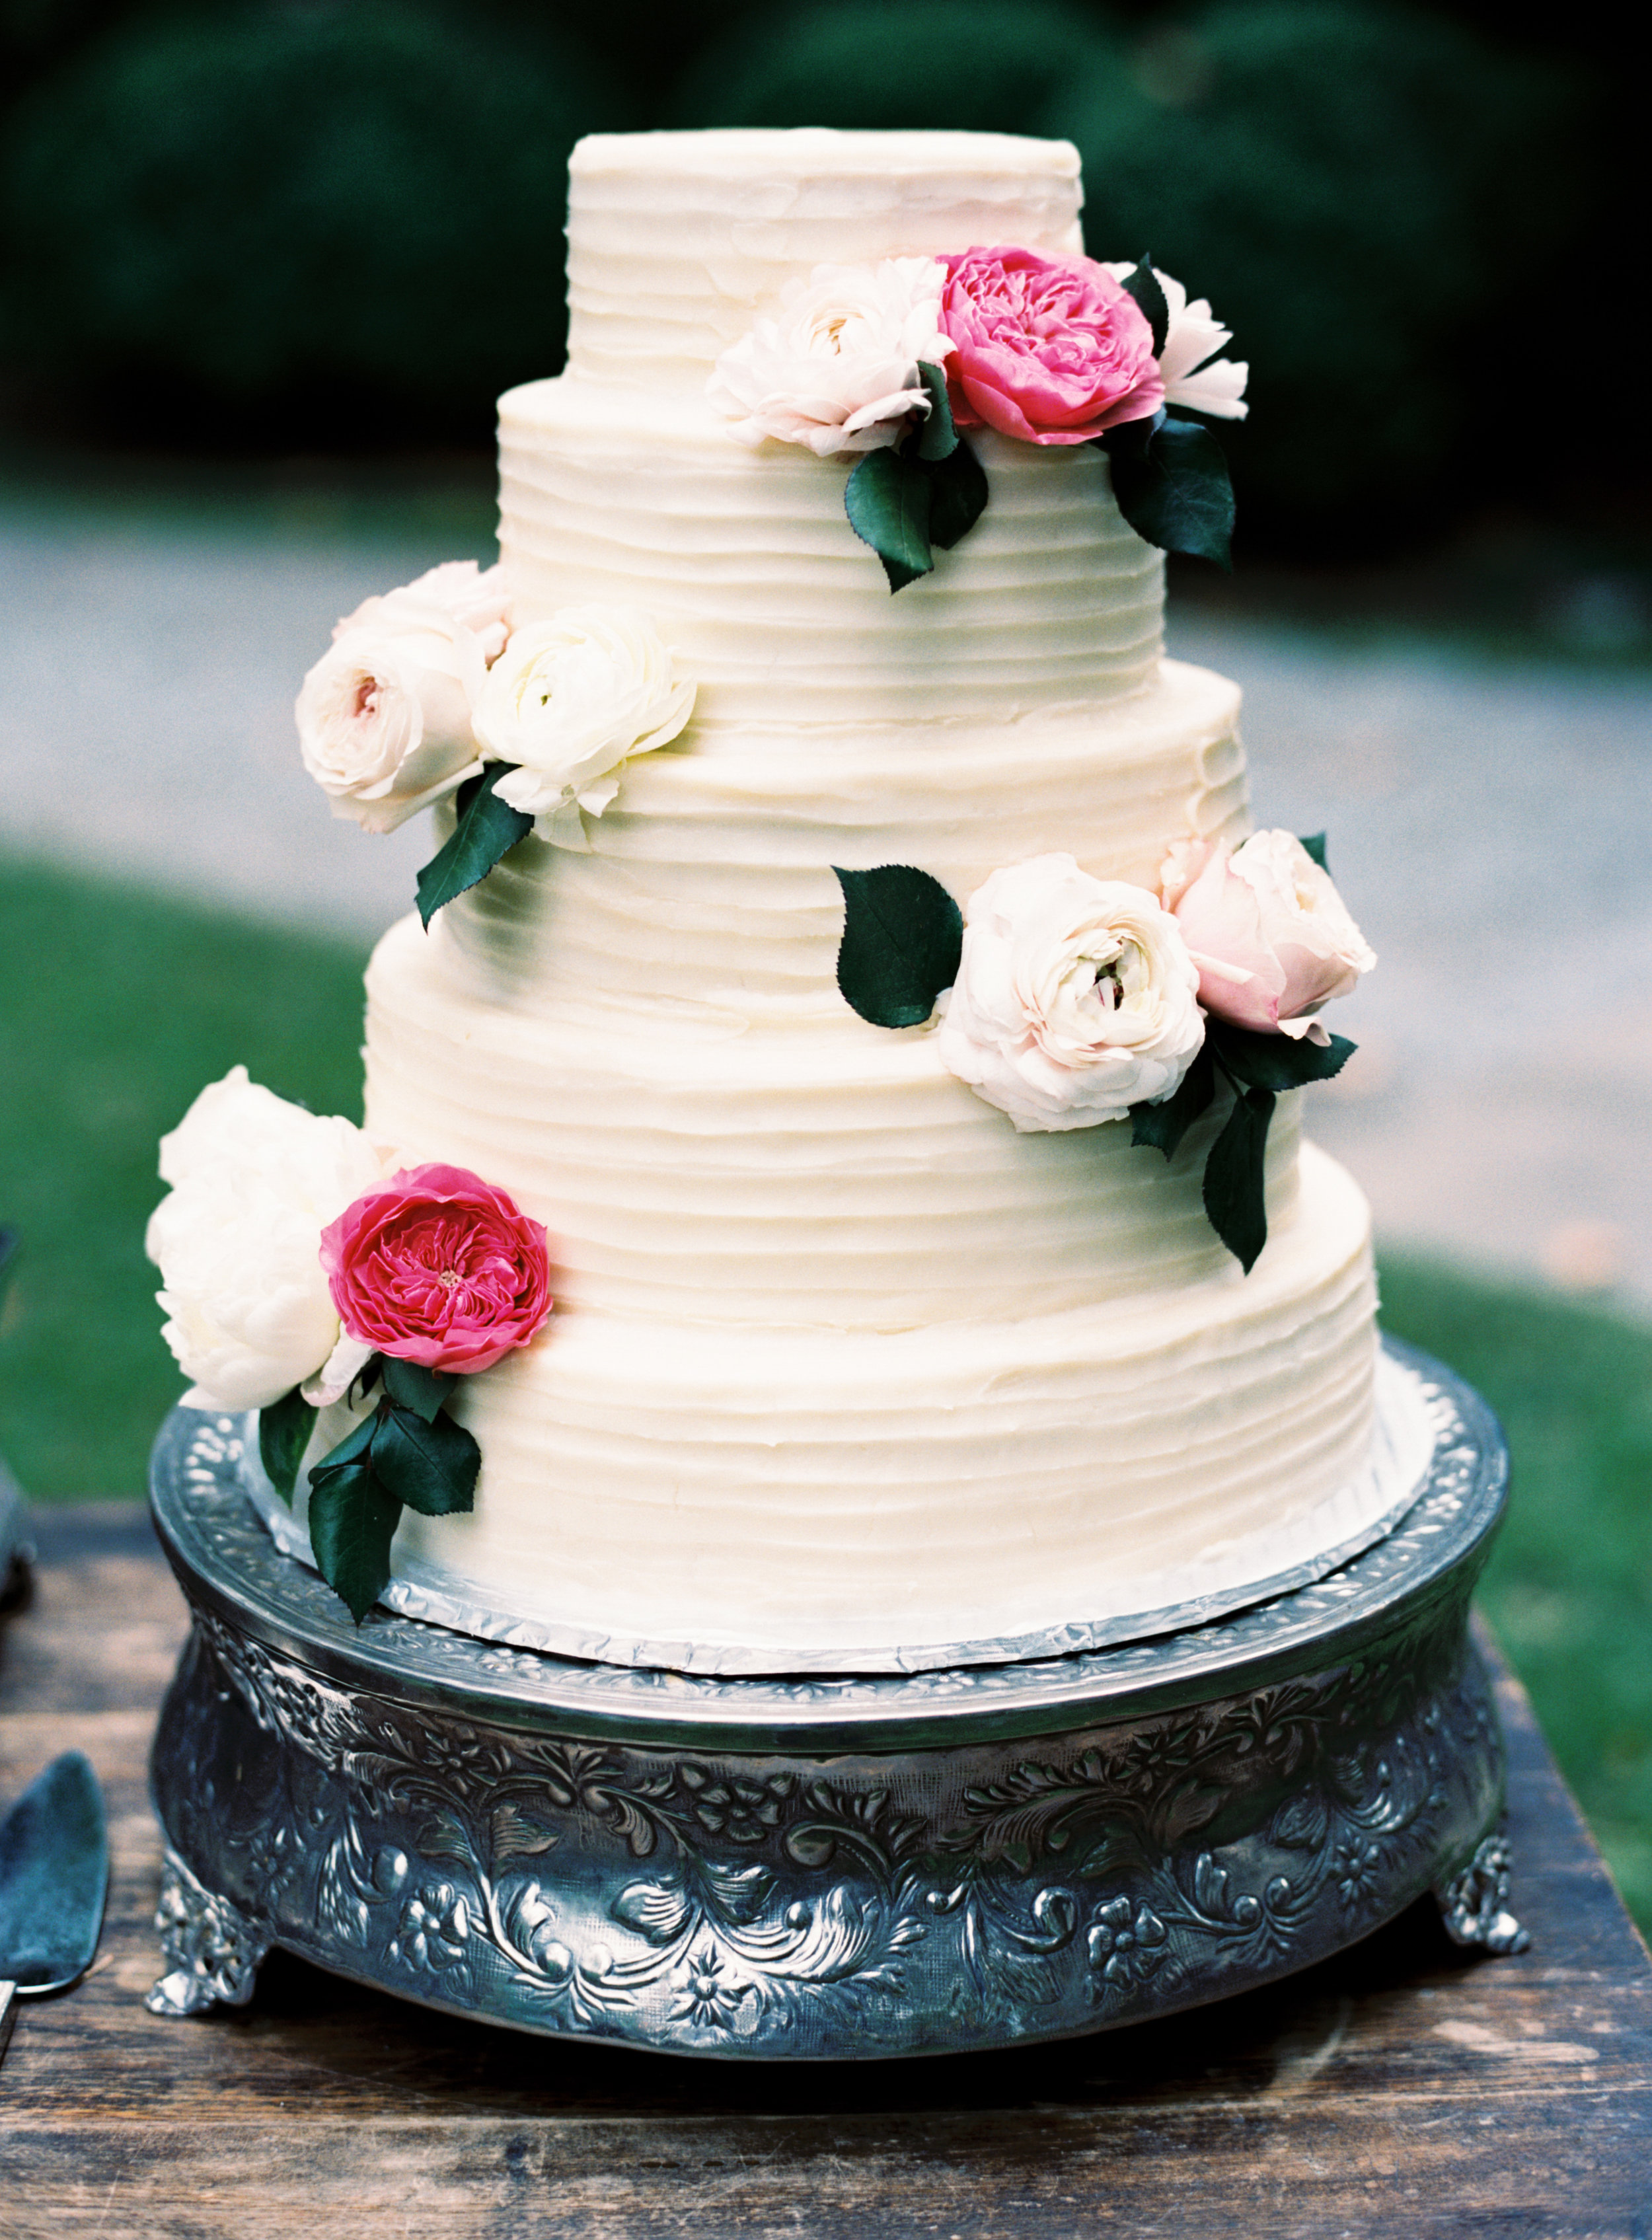 Cake with Horizontal lines and Floral .jpg